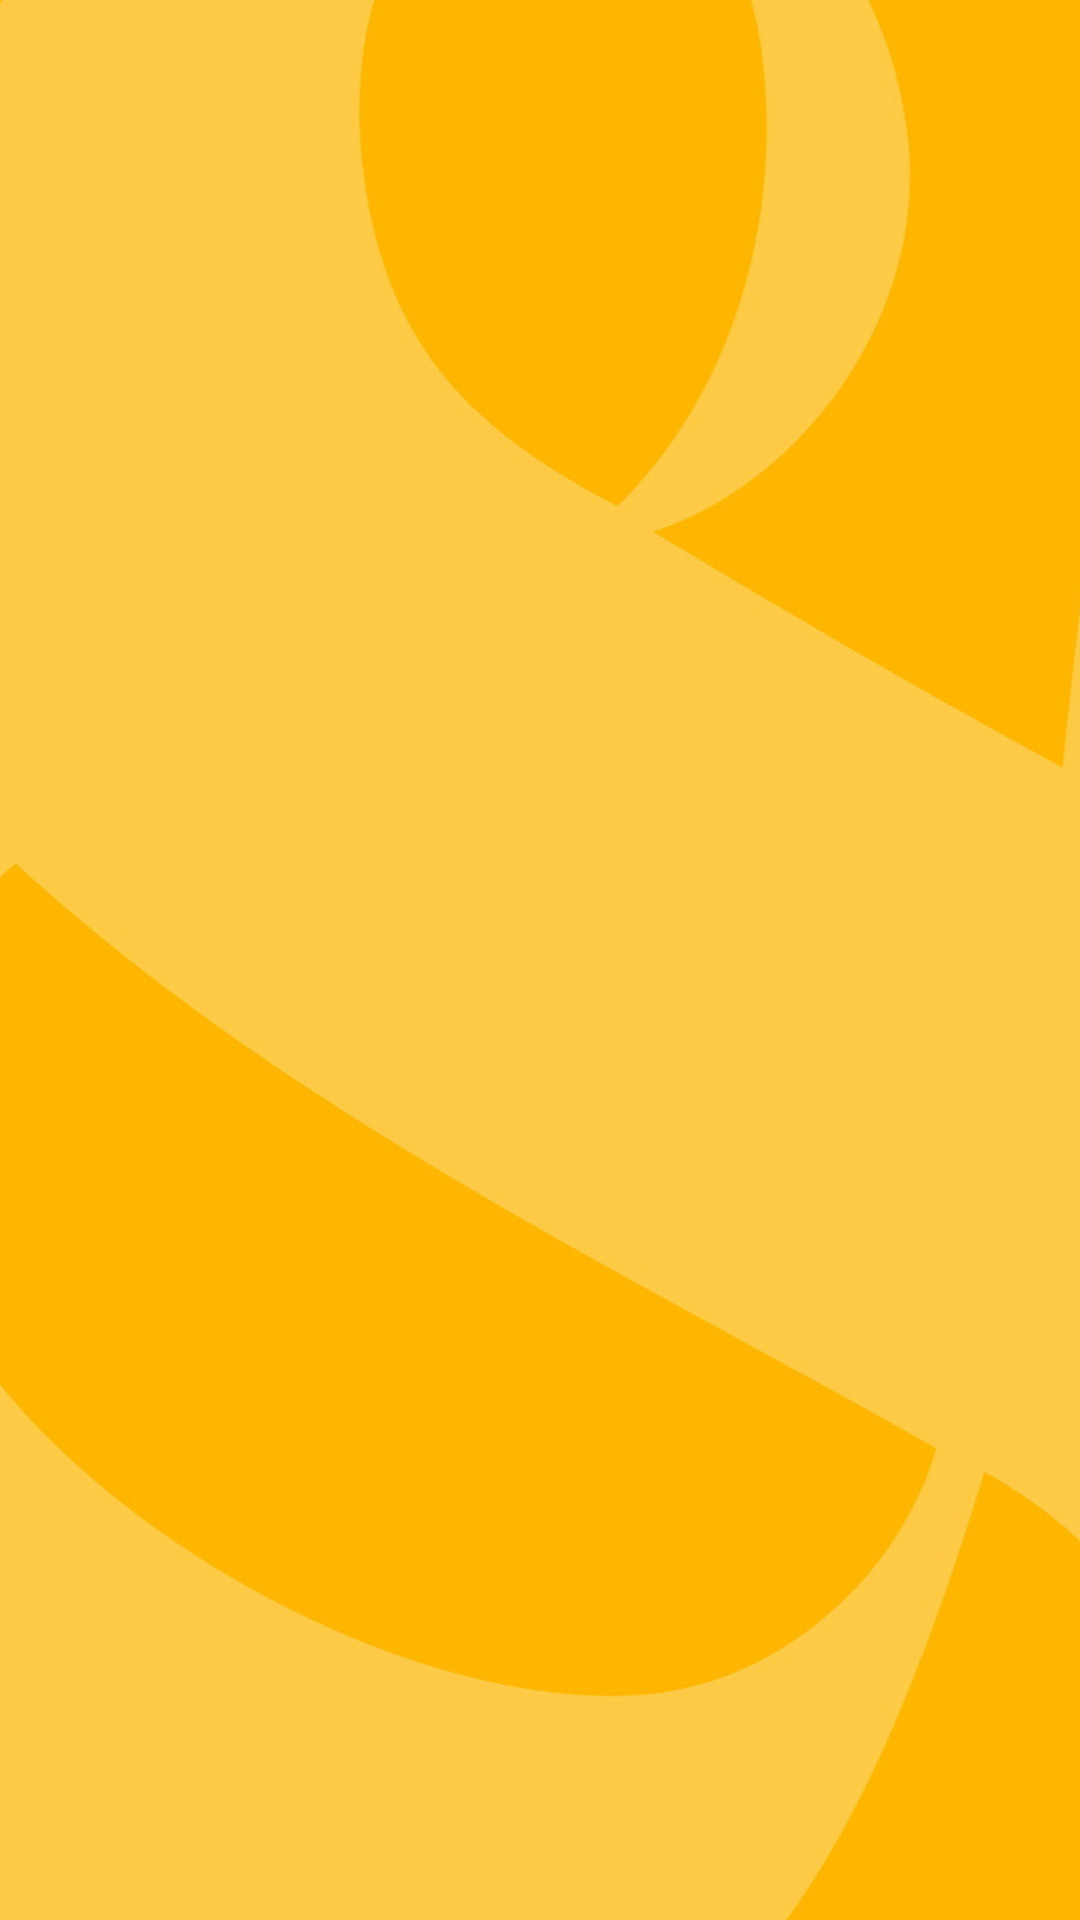 1920x1200 Light Yellow Color Background Wallpaper